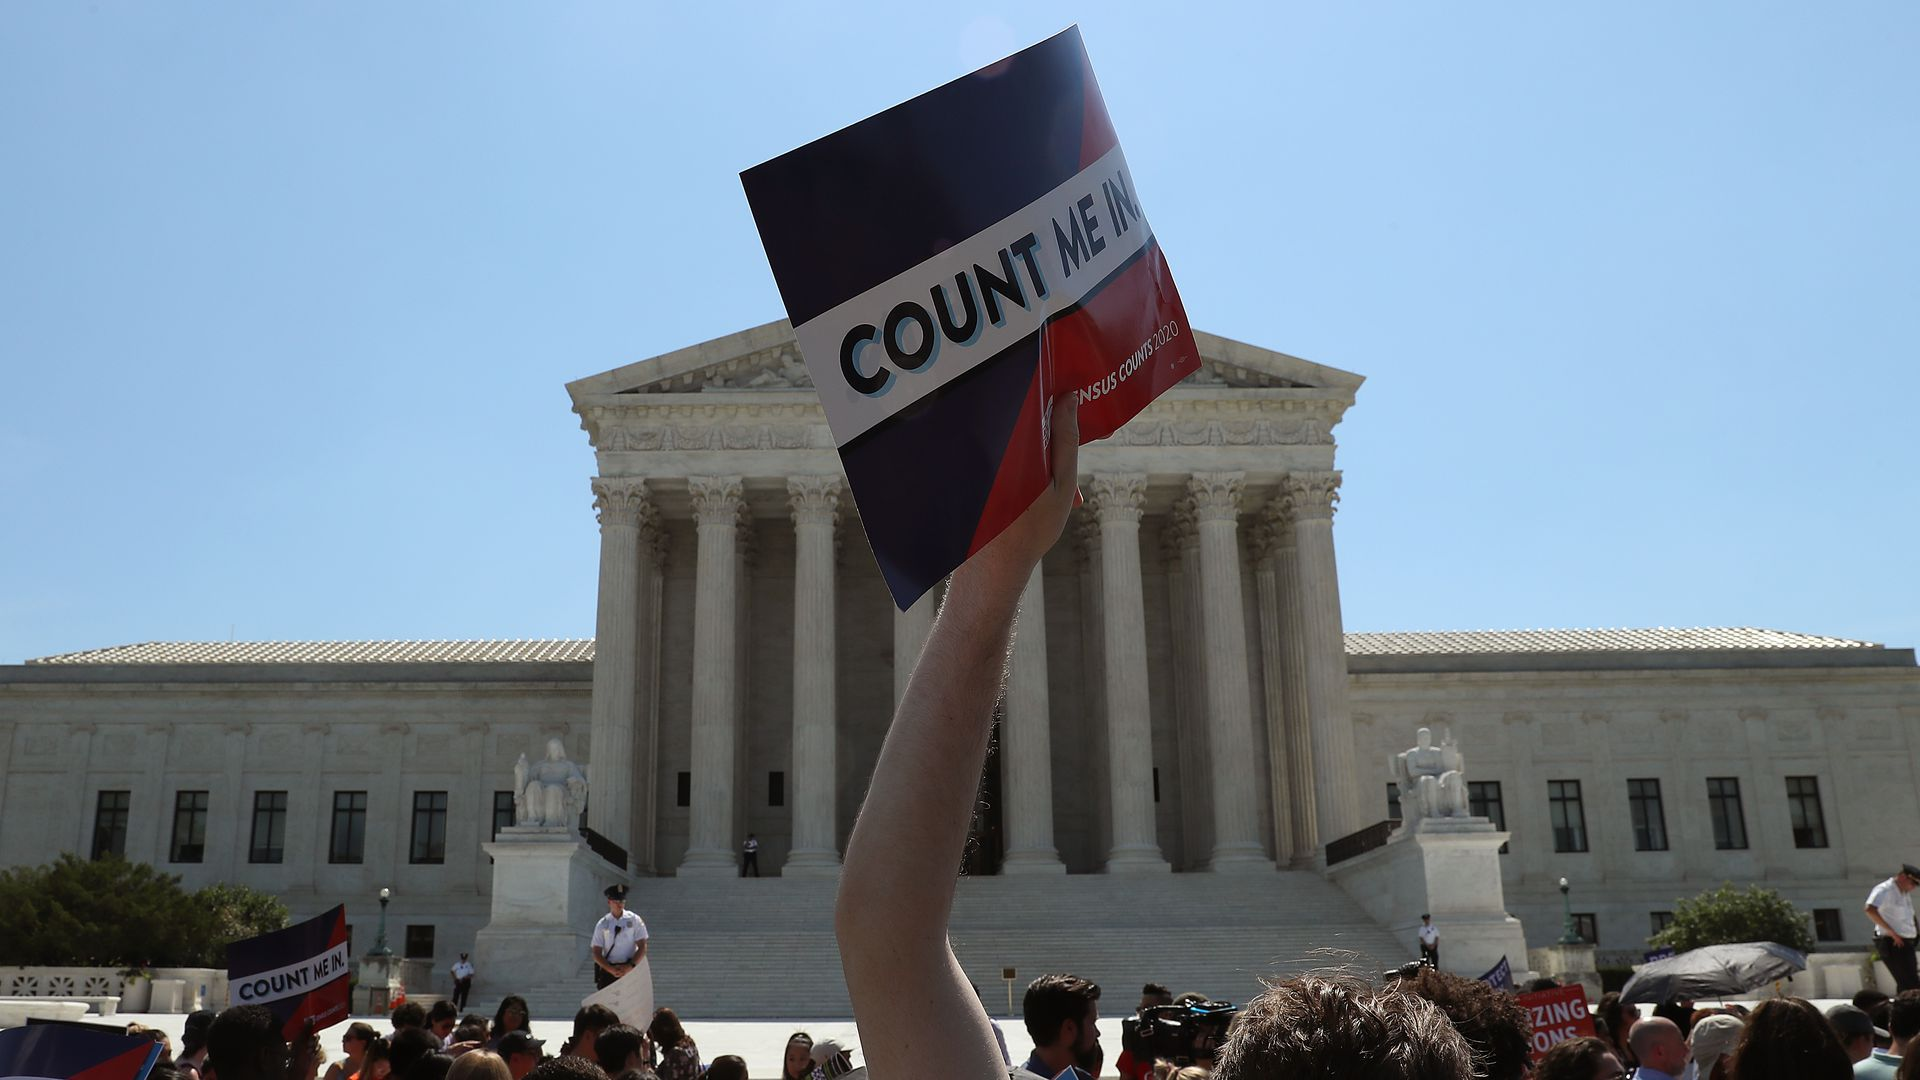 "This image shows a man holding a ""Count Me in"" sign in front of the Supreme Court at a protest."